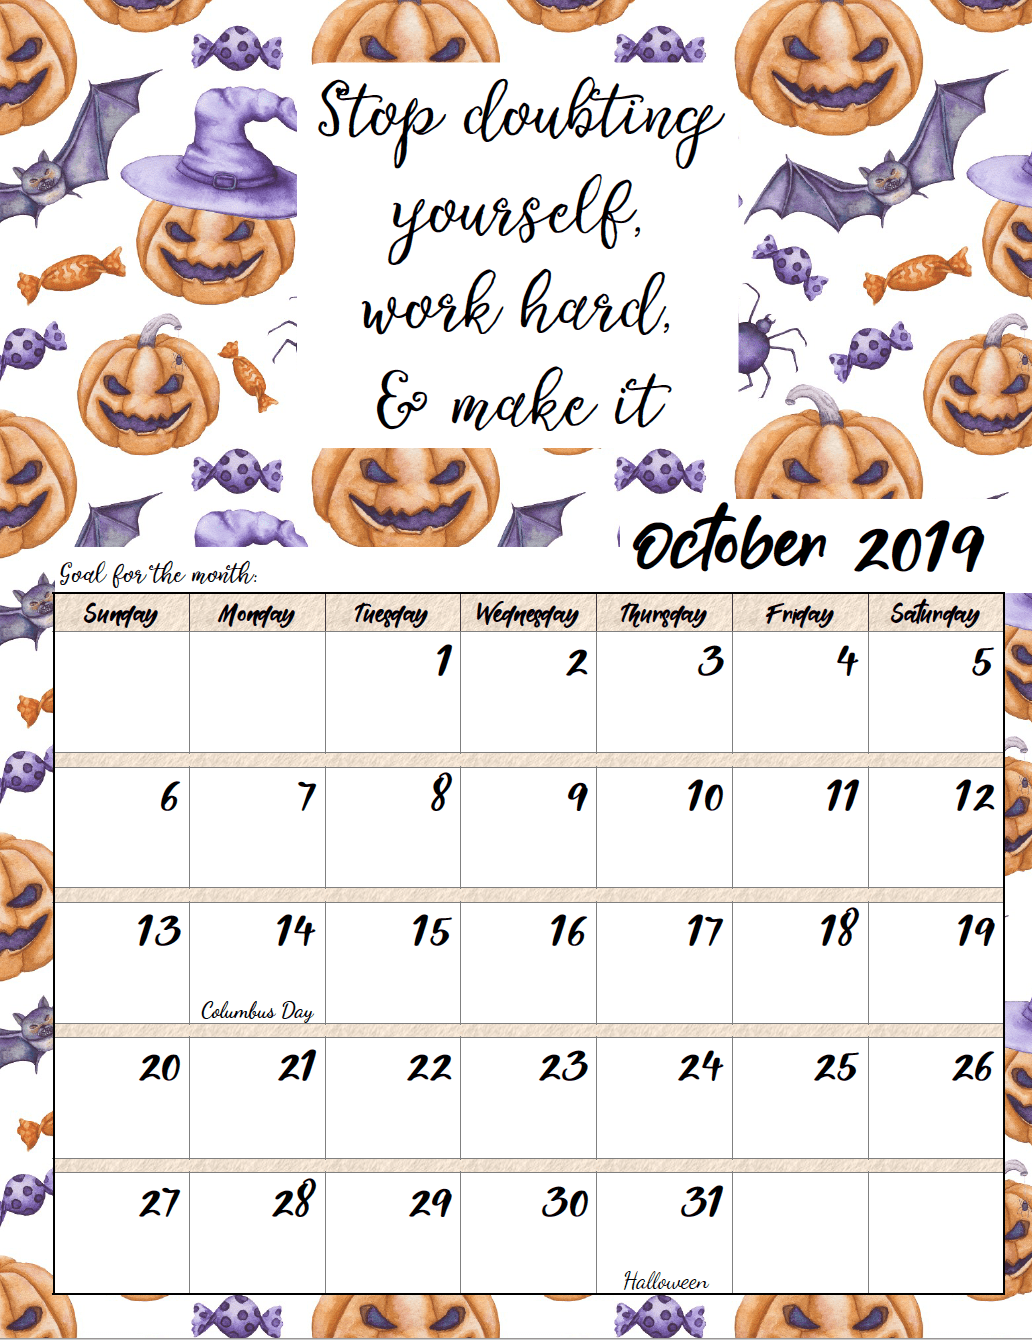 photograph about Free Printable Motivational Quotes named Totally free Printable 2019 Month to month Motivational Calendars